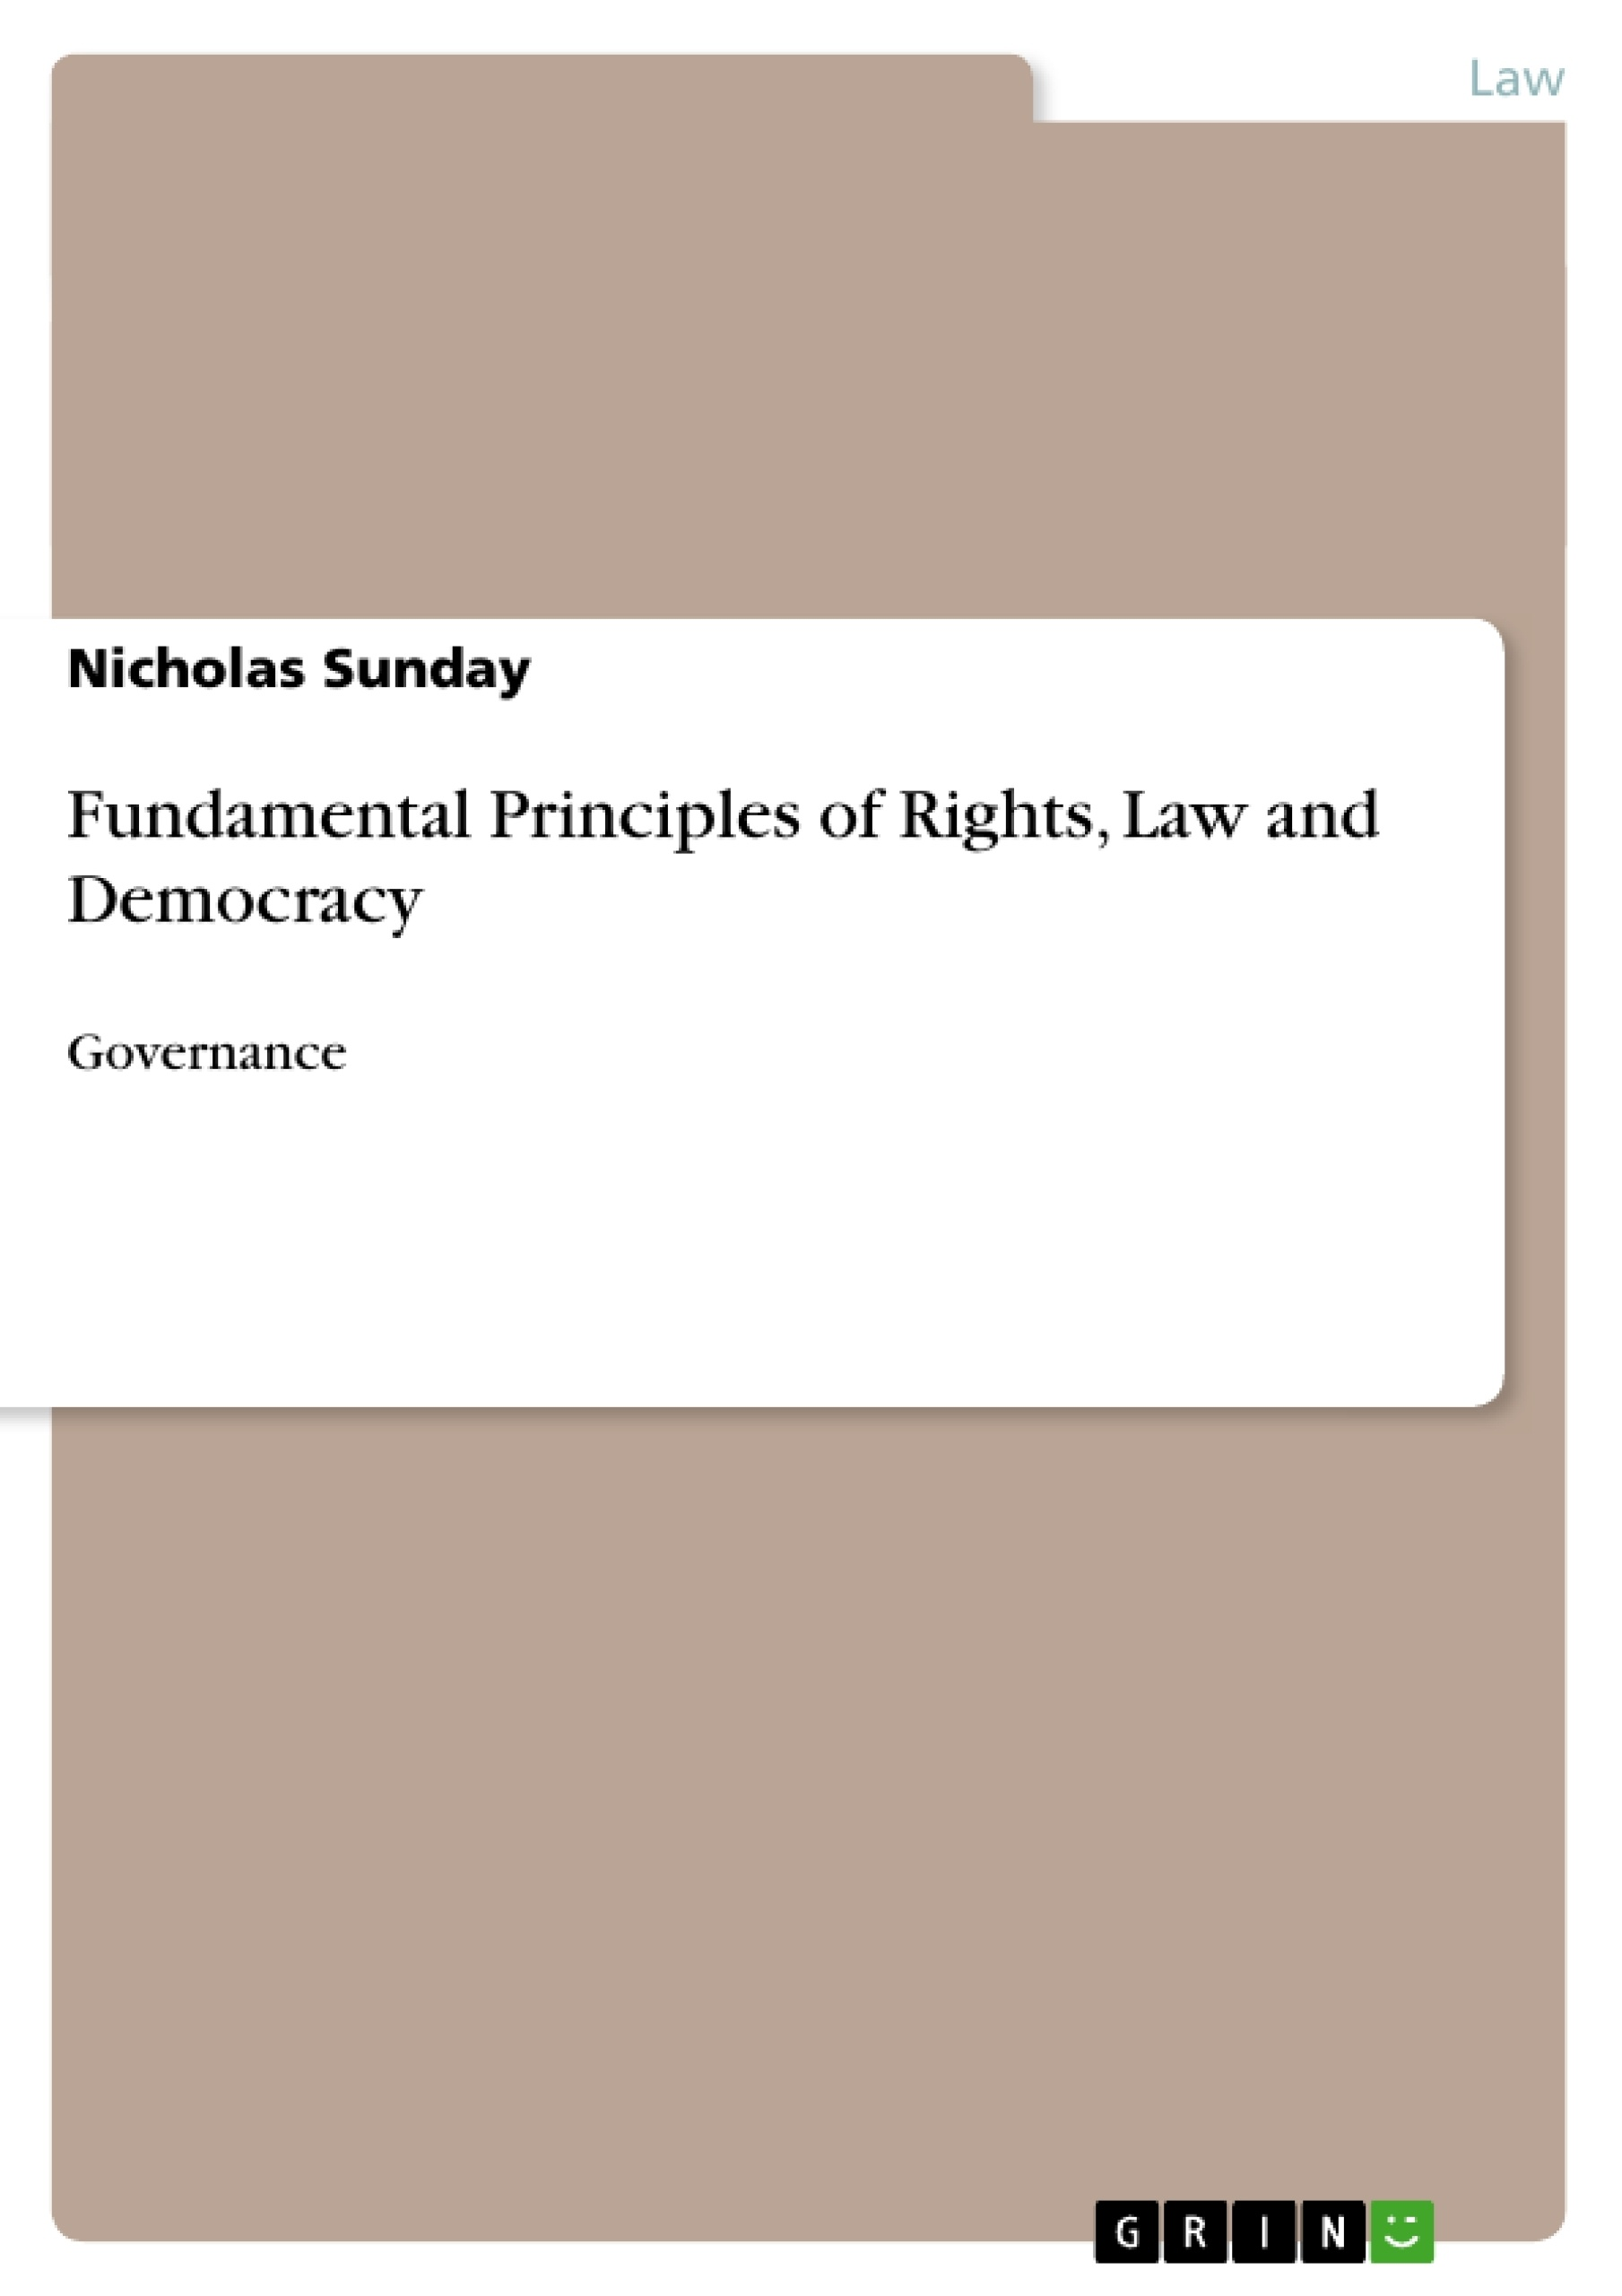 Title: Fundamental Principles of Rights, Law and Democracy